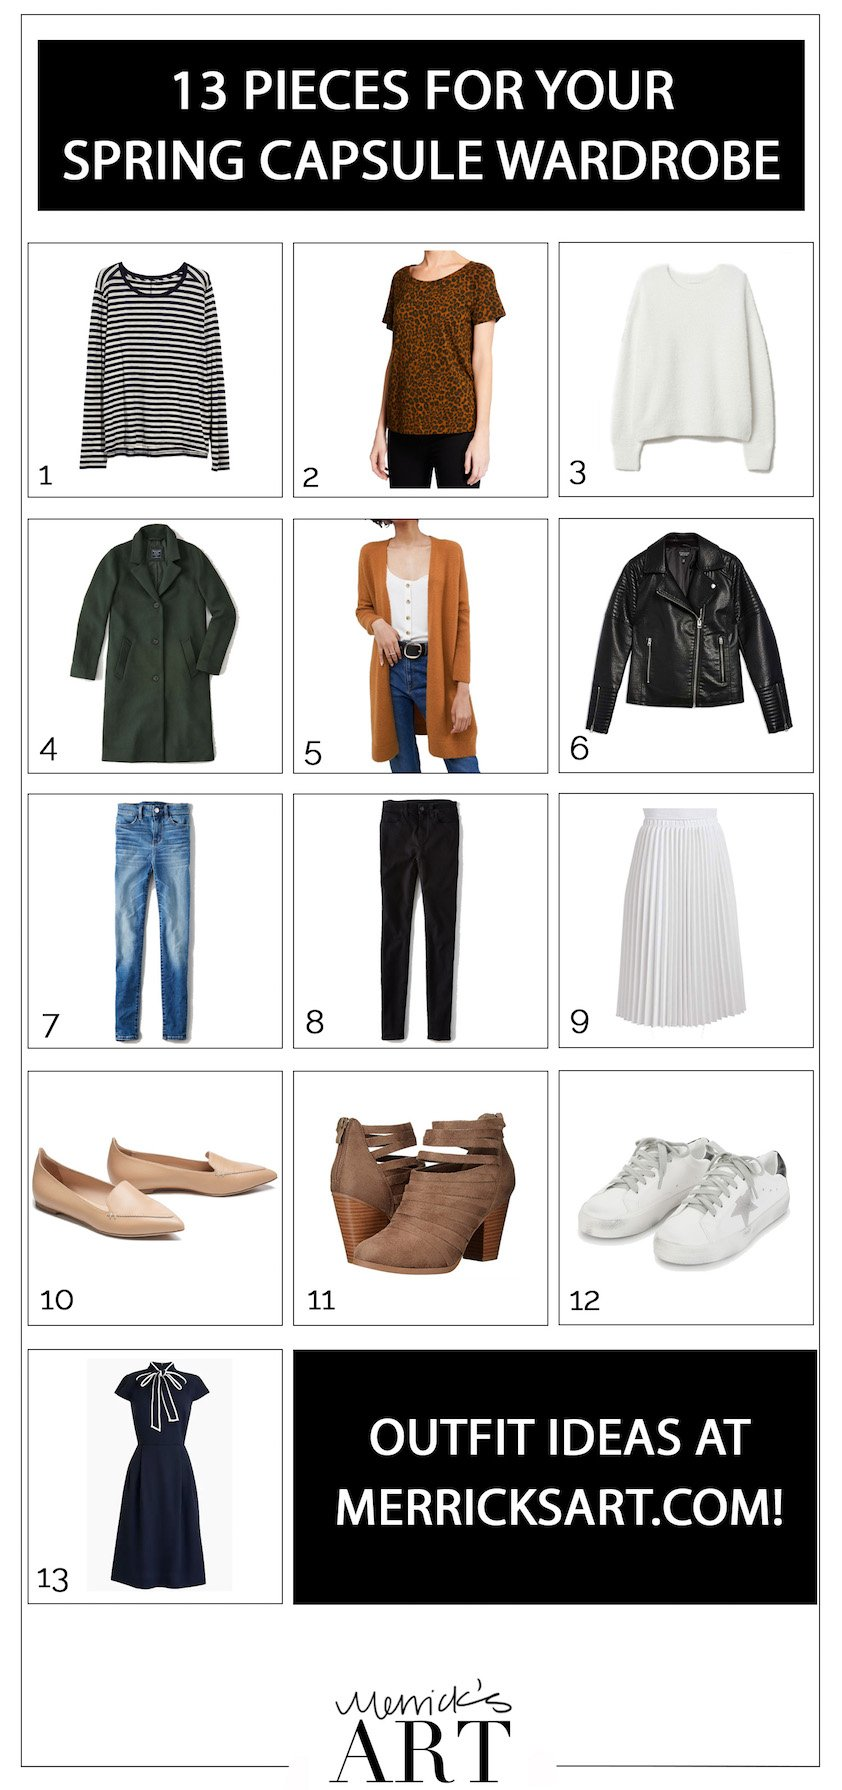 This small capsule wardrobe is great for traveling or trying out the capsule wardrobe!